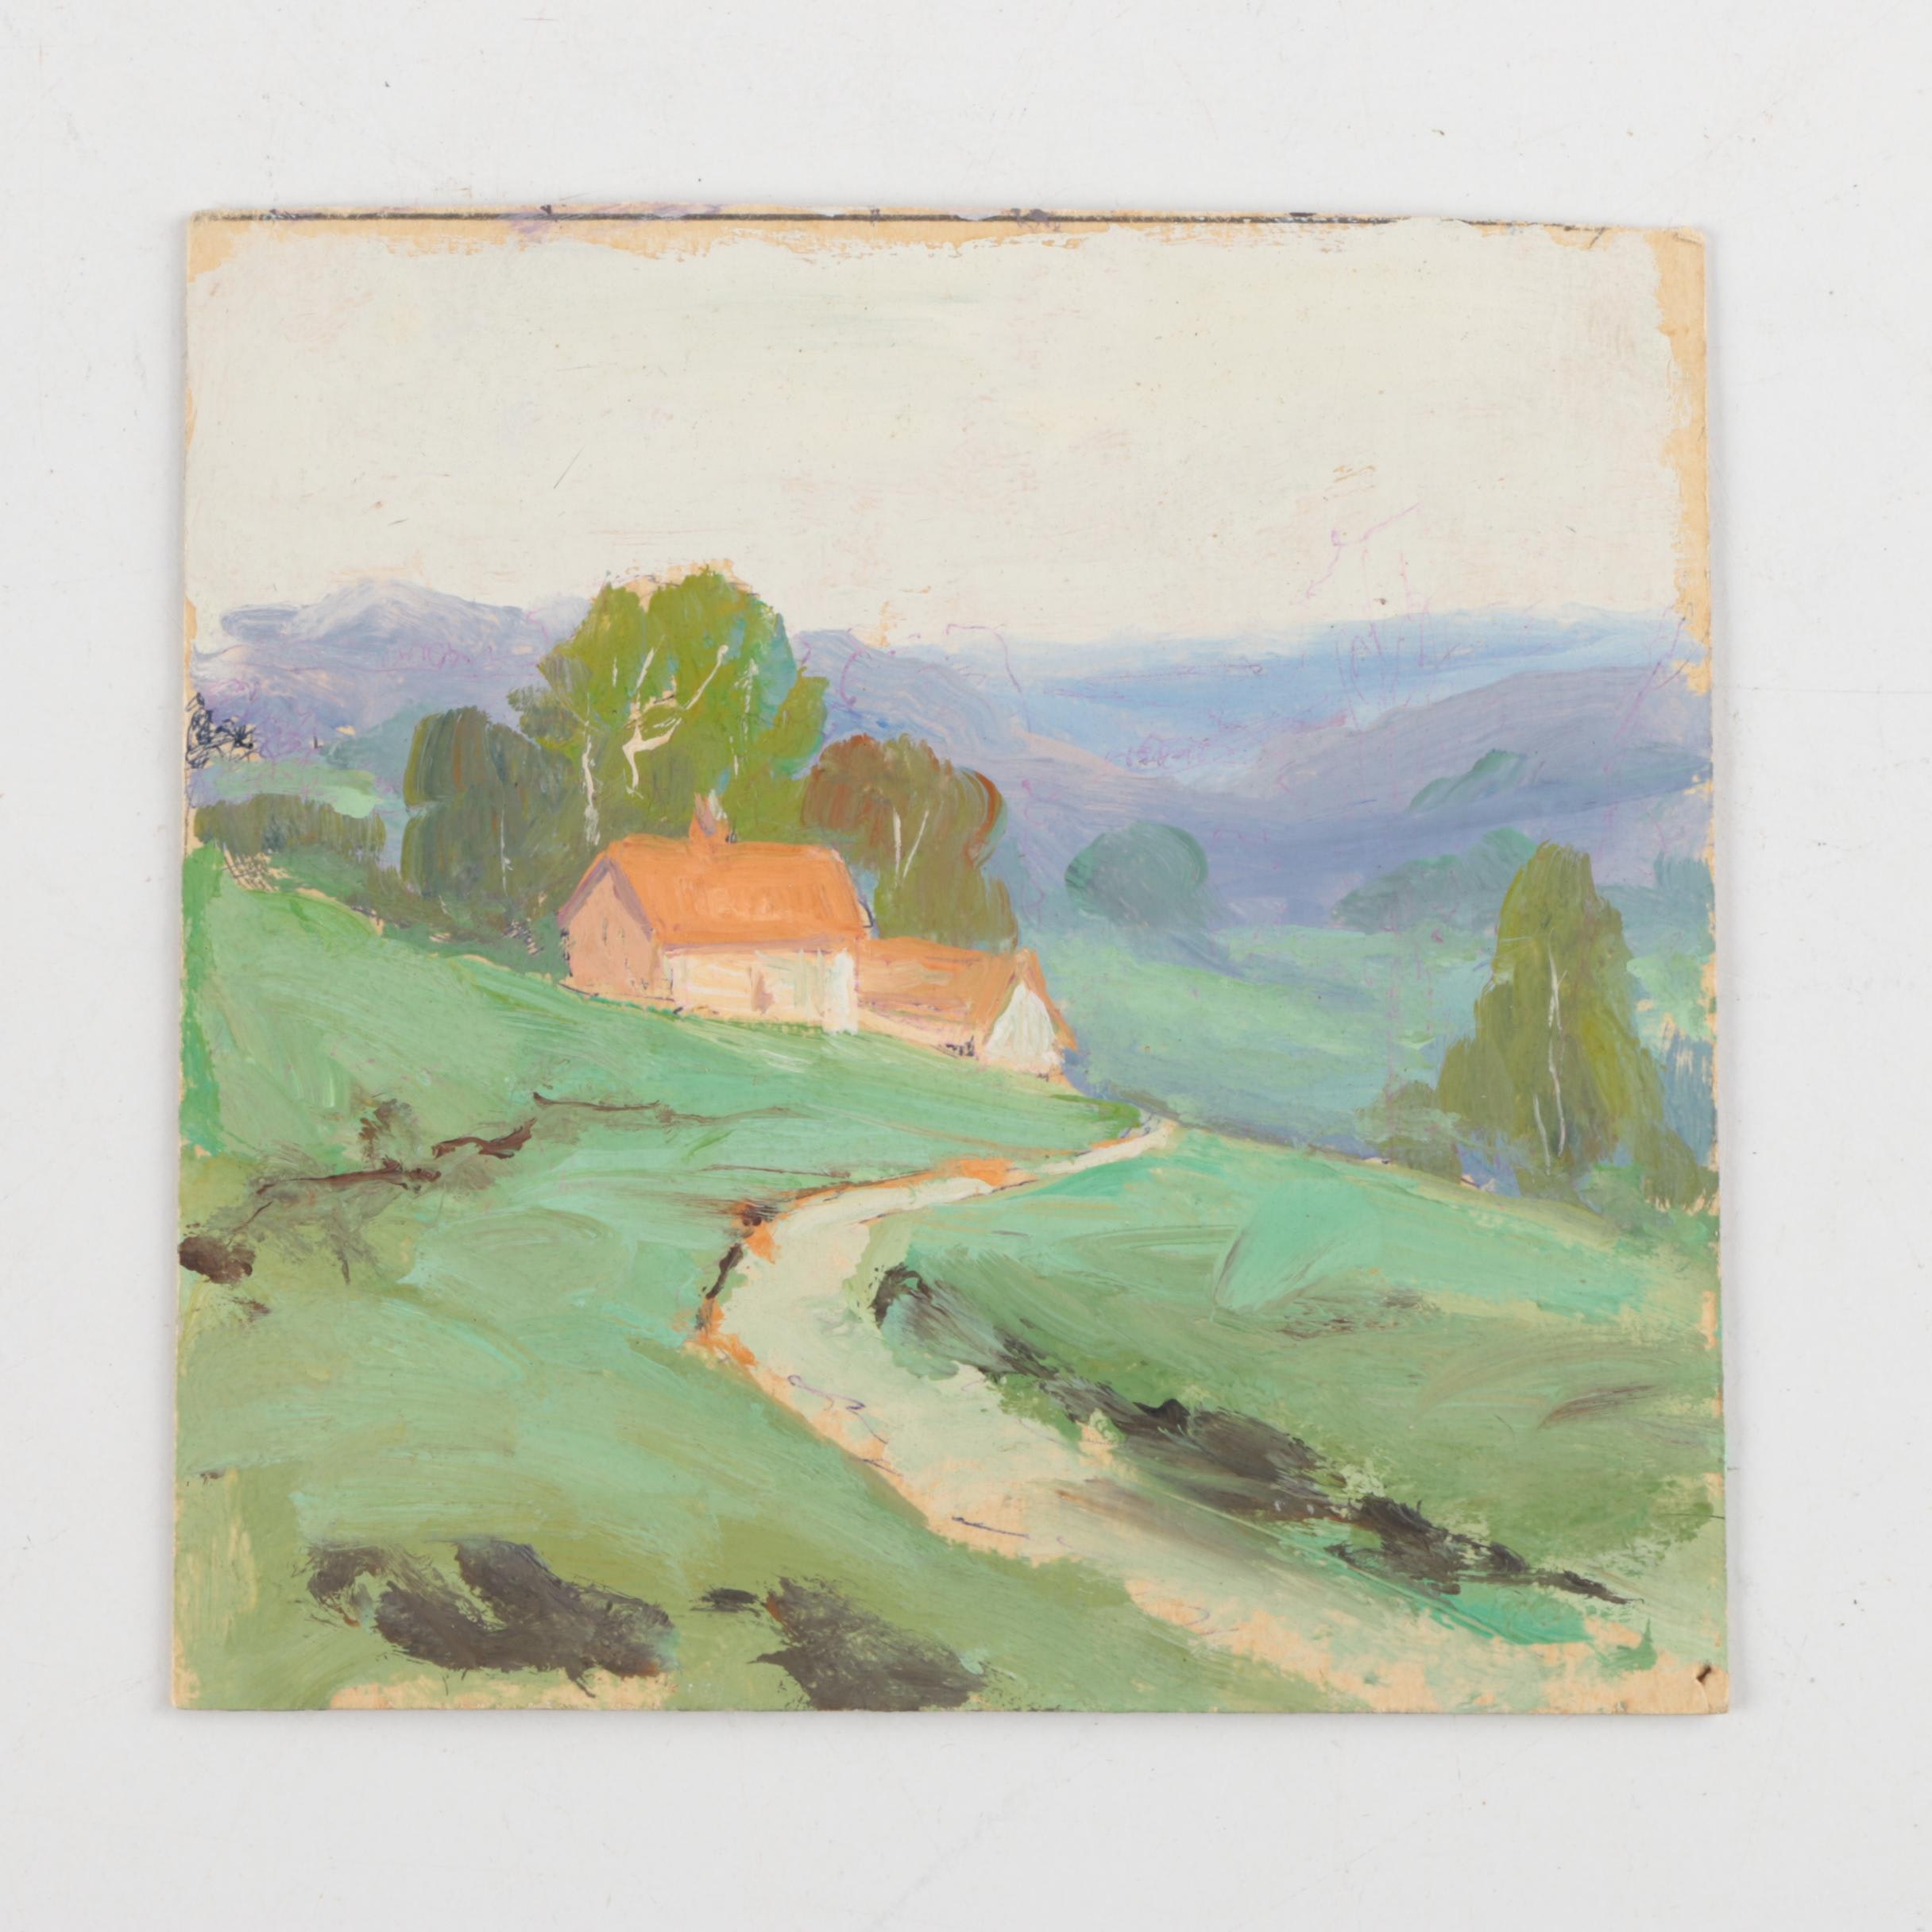 Attributed to William A. Eyden Jr. Landscape Painting on Board